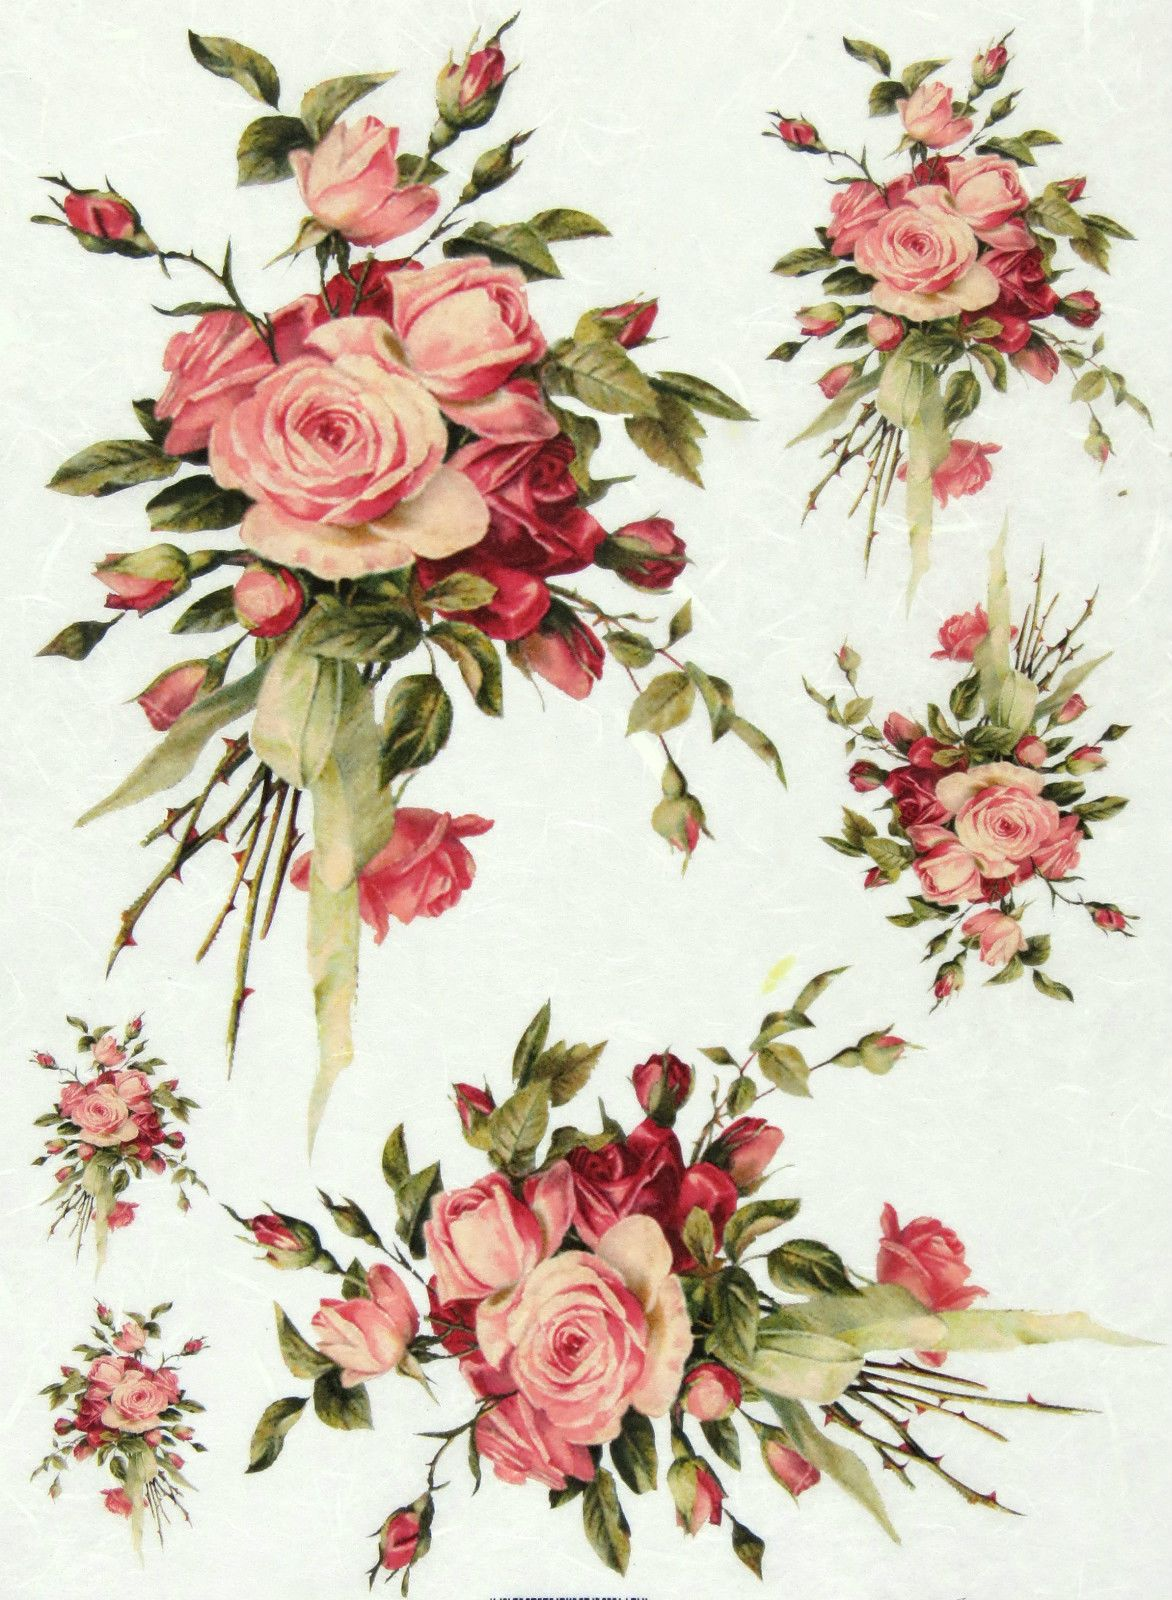 How to scrapbook a rose